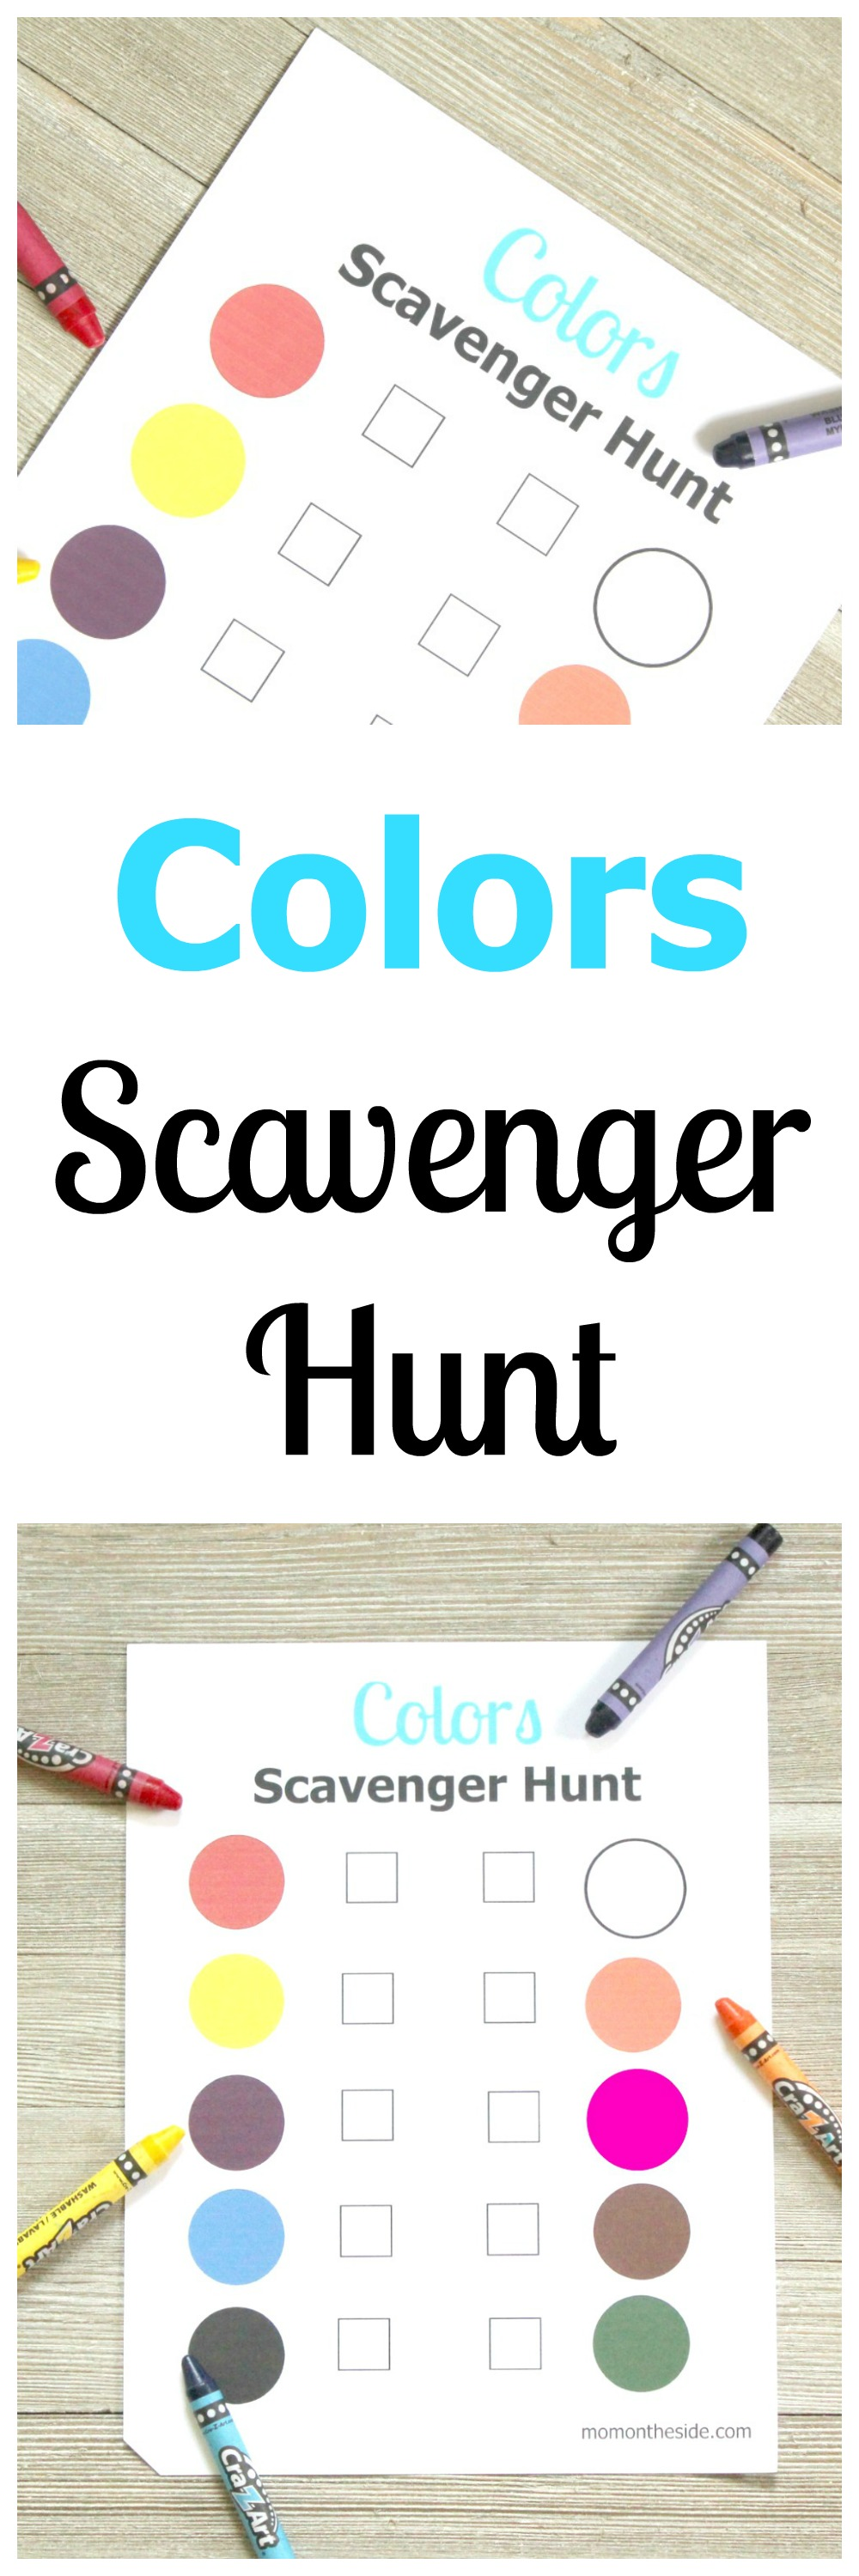 Printable Colors Scavenger Hunt for Kids and Parents